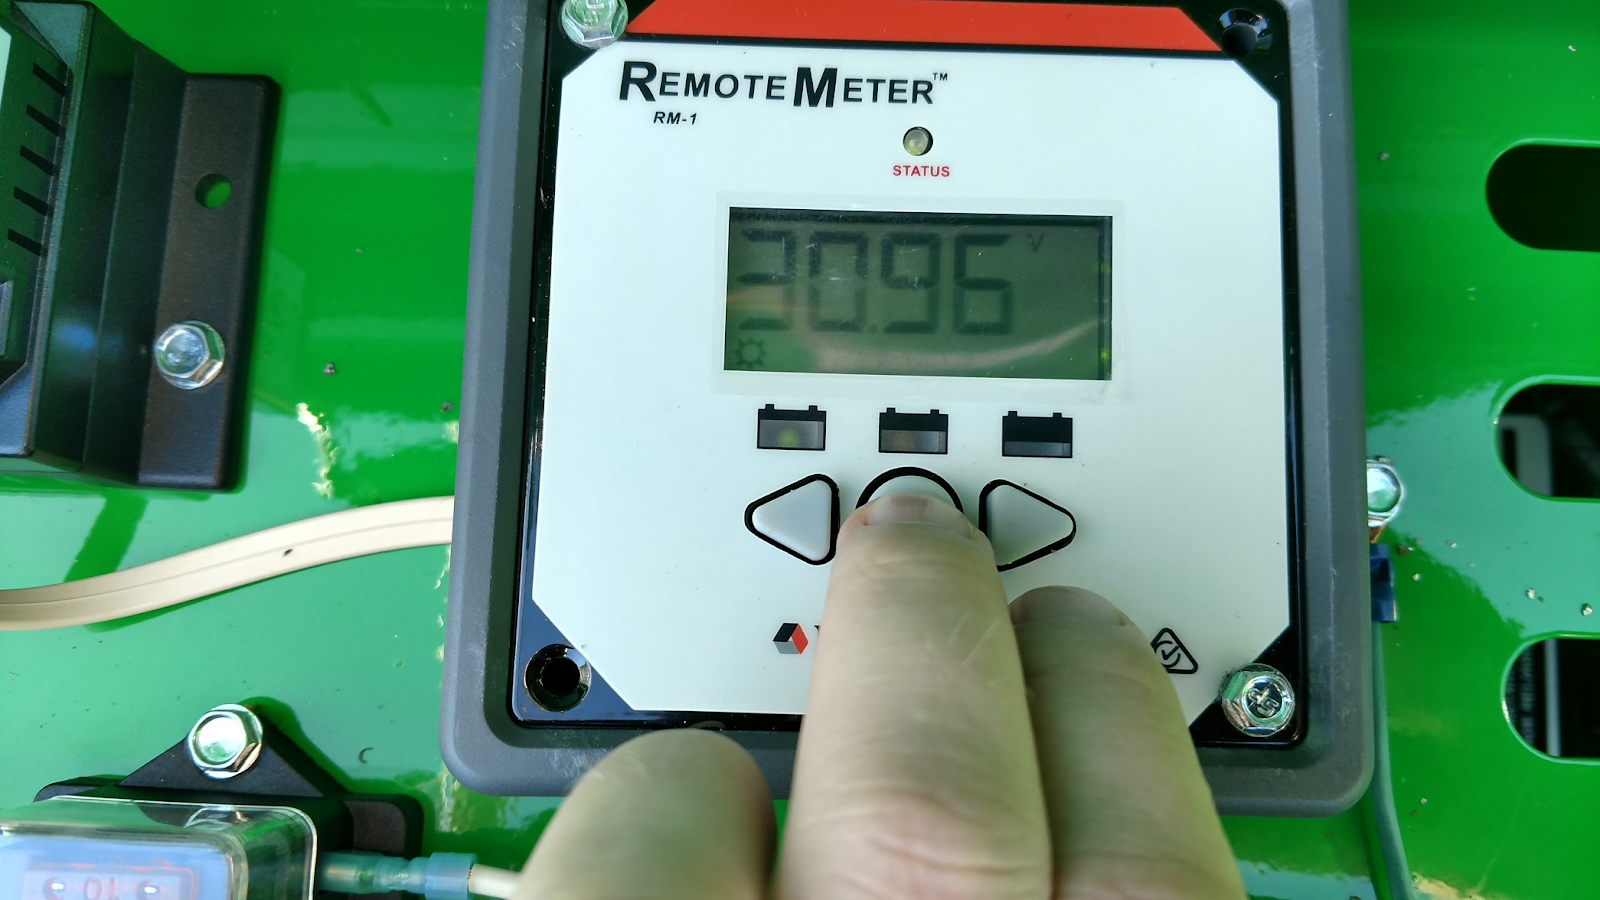 Troubleshooting Power With Morningstar Remote Meter Liveview Mppt Charge Controller Versus Pwm Performance Test Solar Panel Connections 3 How To Check Load Readings This Will Help Determine If The Communications Box At Top Of Boom Is Getting